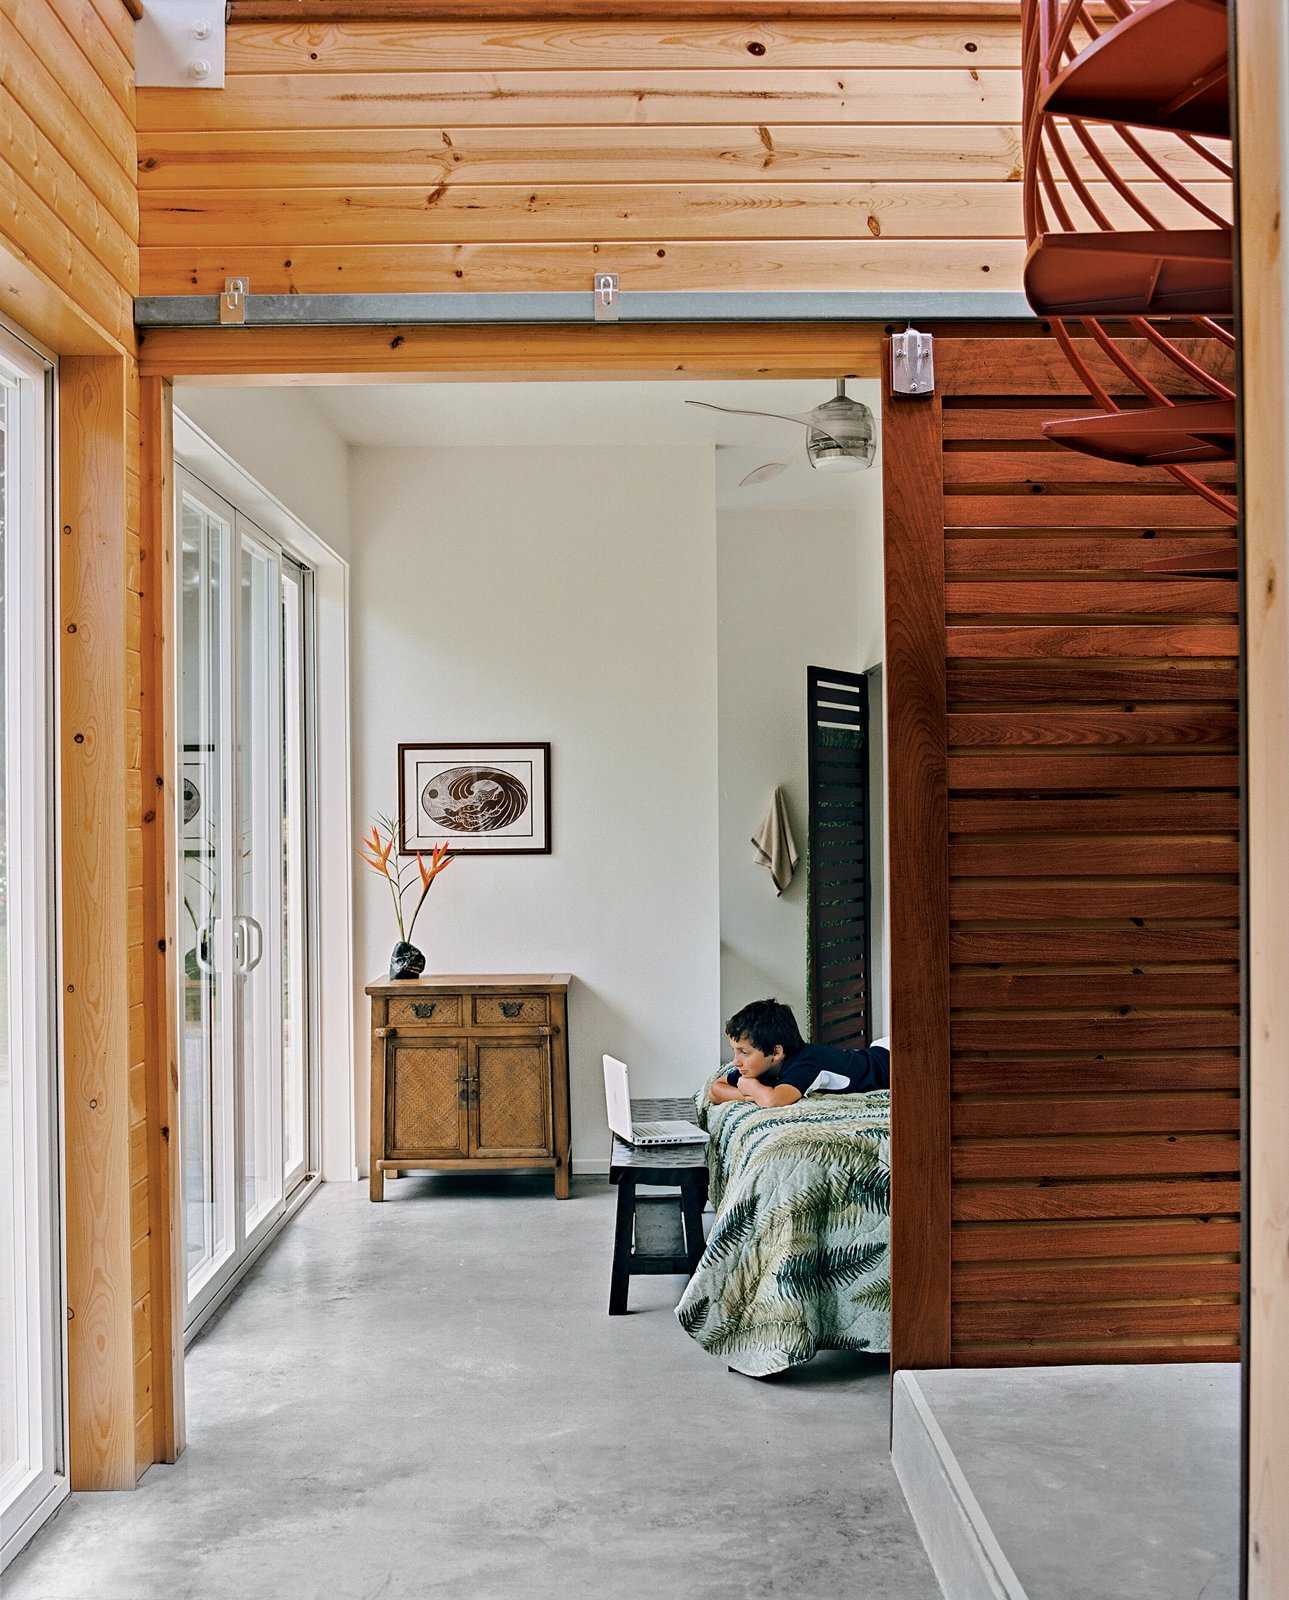 Kurokawa and Fishman's son Danny Fishman-Engel enjoys time away from the city by studying magic tricks in his bedroom. Sliding slatted doors separate the asymmetrical downstairs spaces. Tagged: Kids Room.  Photo 9 of 9 in Lava Flow 4, The Big Island